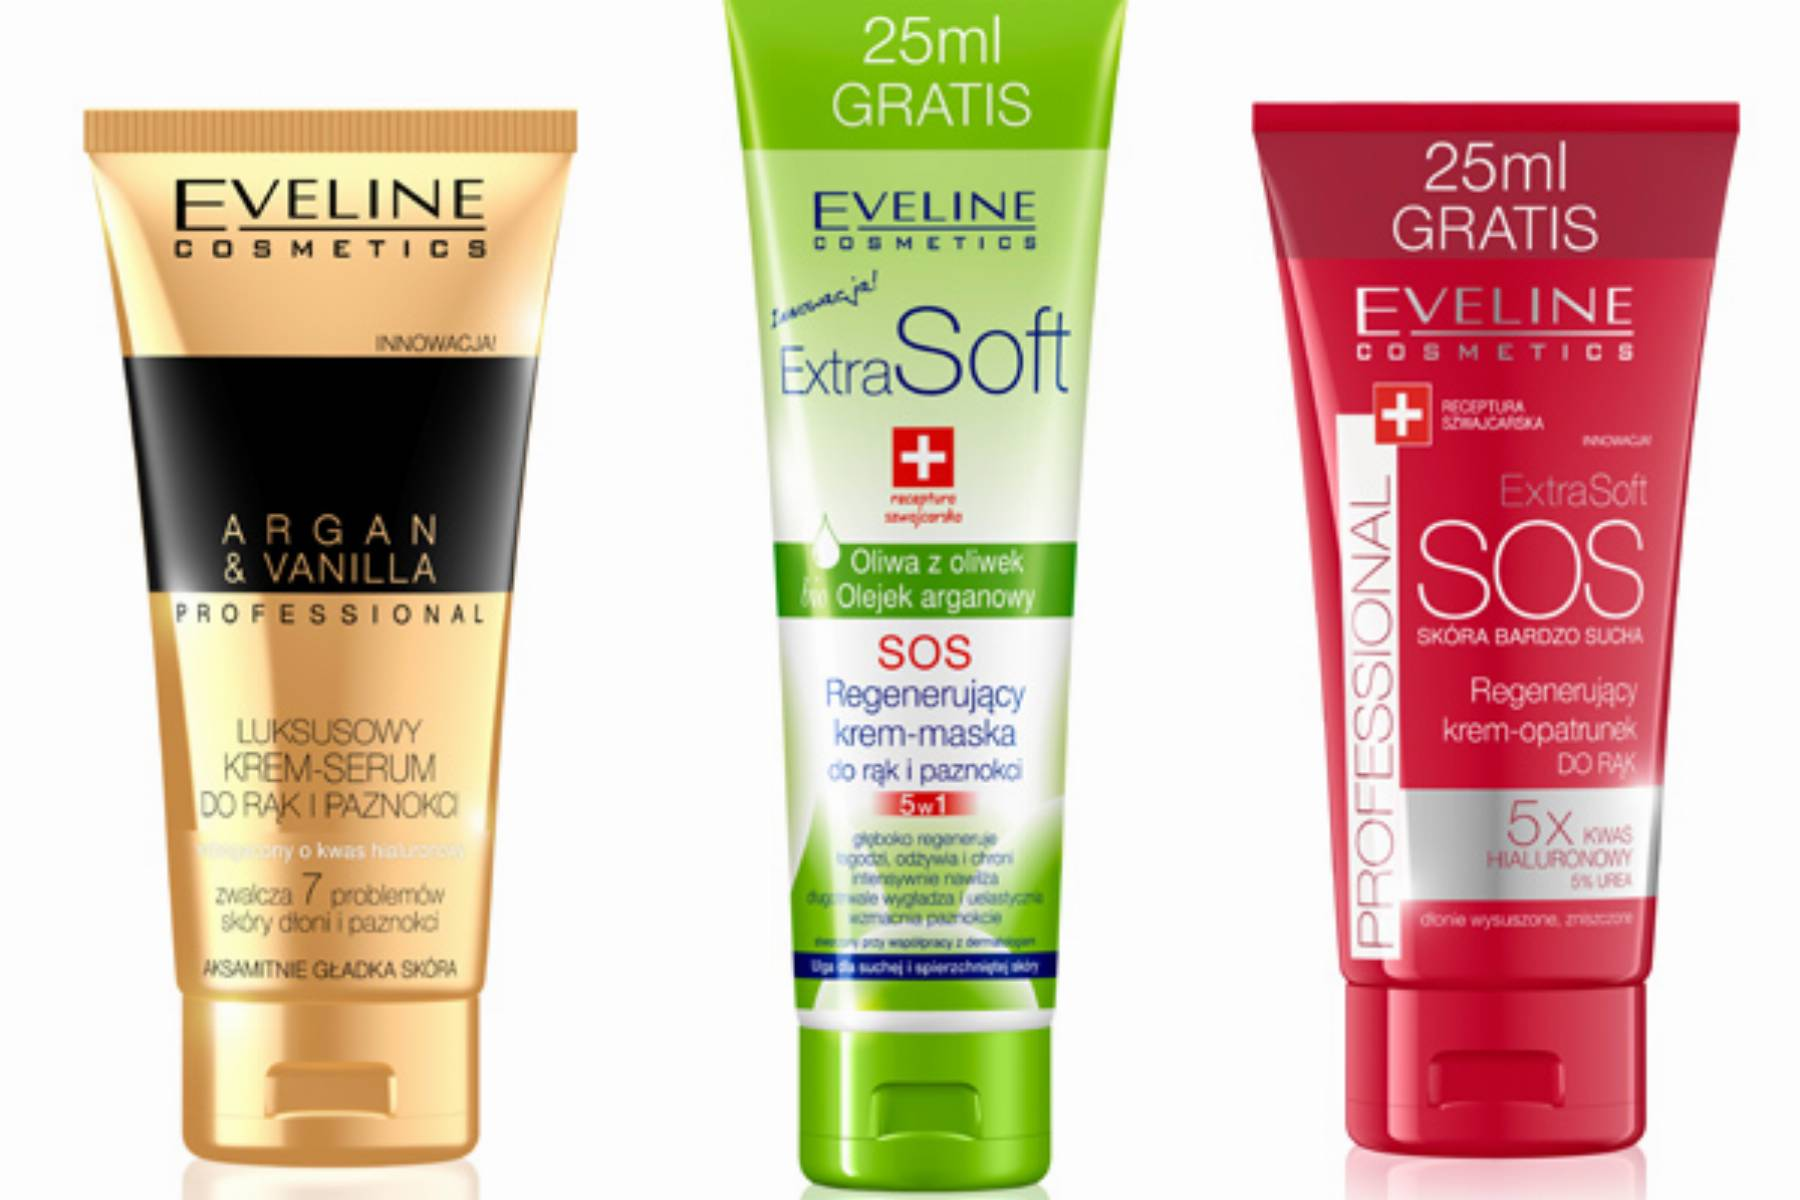 eveline-cosmetics-kremy-do-rak